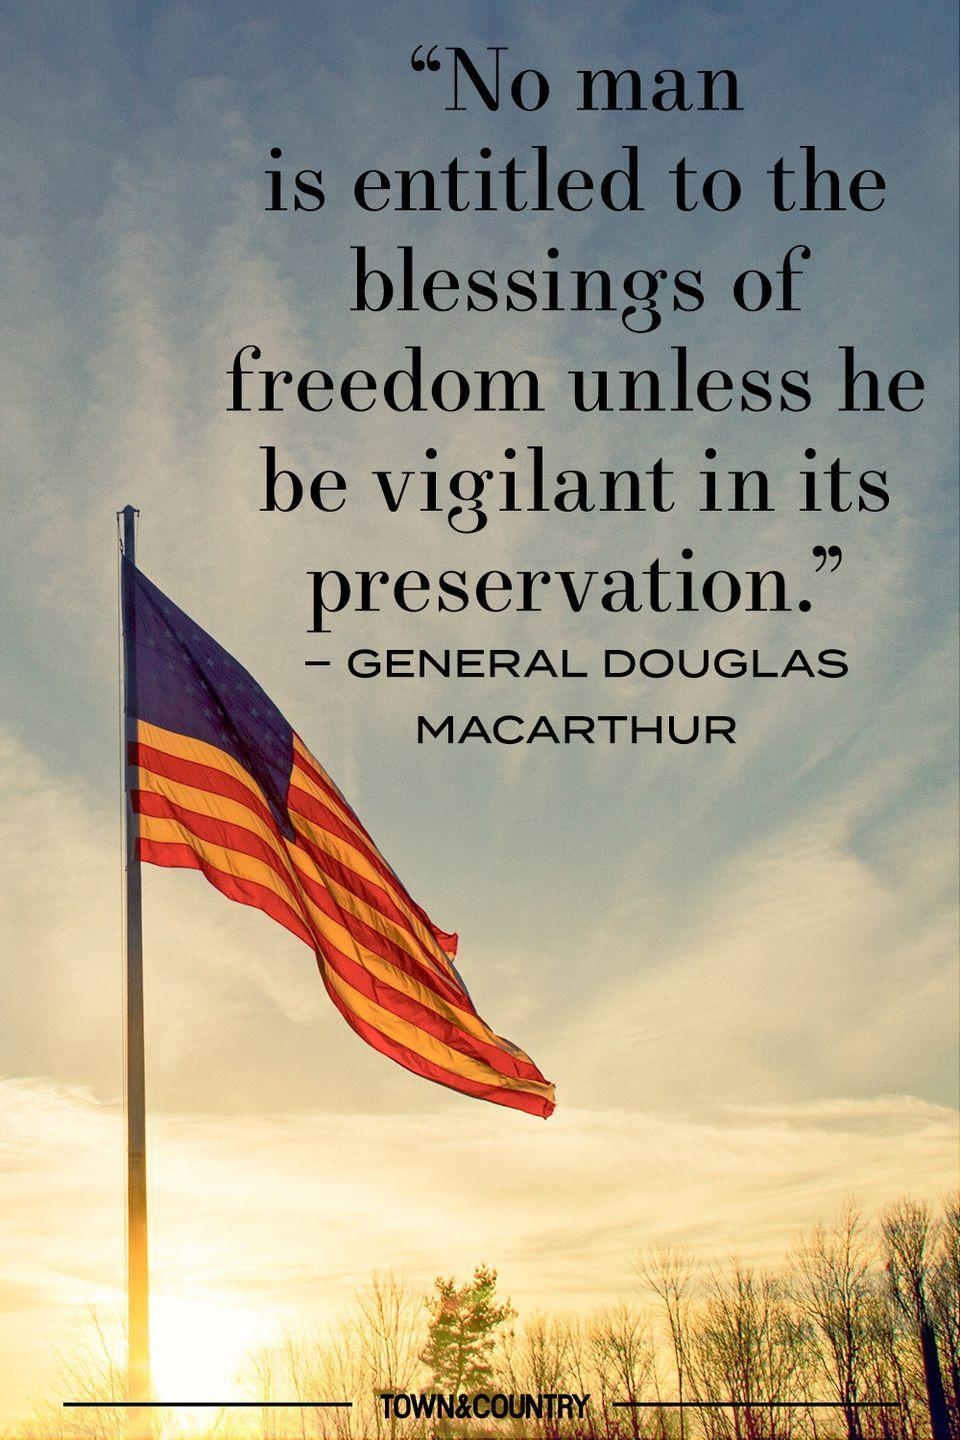 "<p>""No man is entitled to the blessings of freedom unless he be vigilant in its preservation."" </p><p>– General Douglas MacArthur </p>"